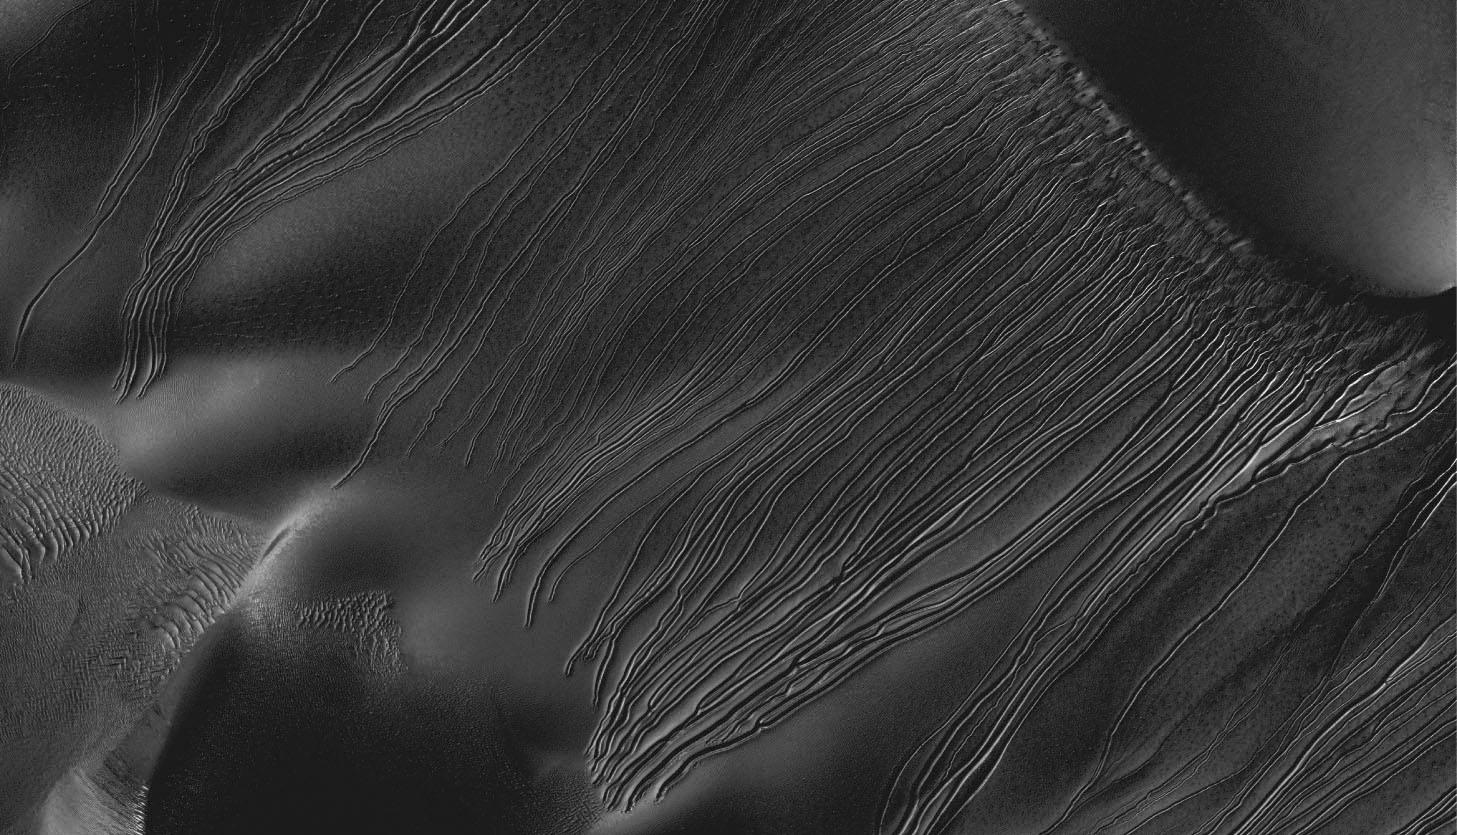 Some Mars Gullies May Be Carved by Dry Ice 'Sleds'